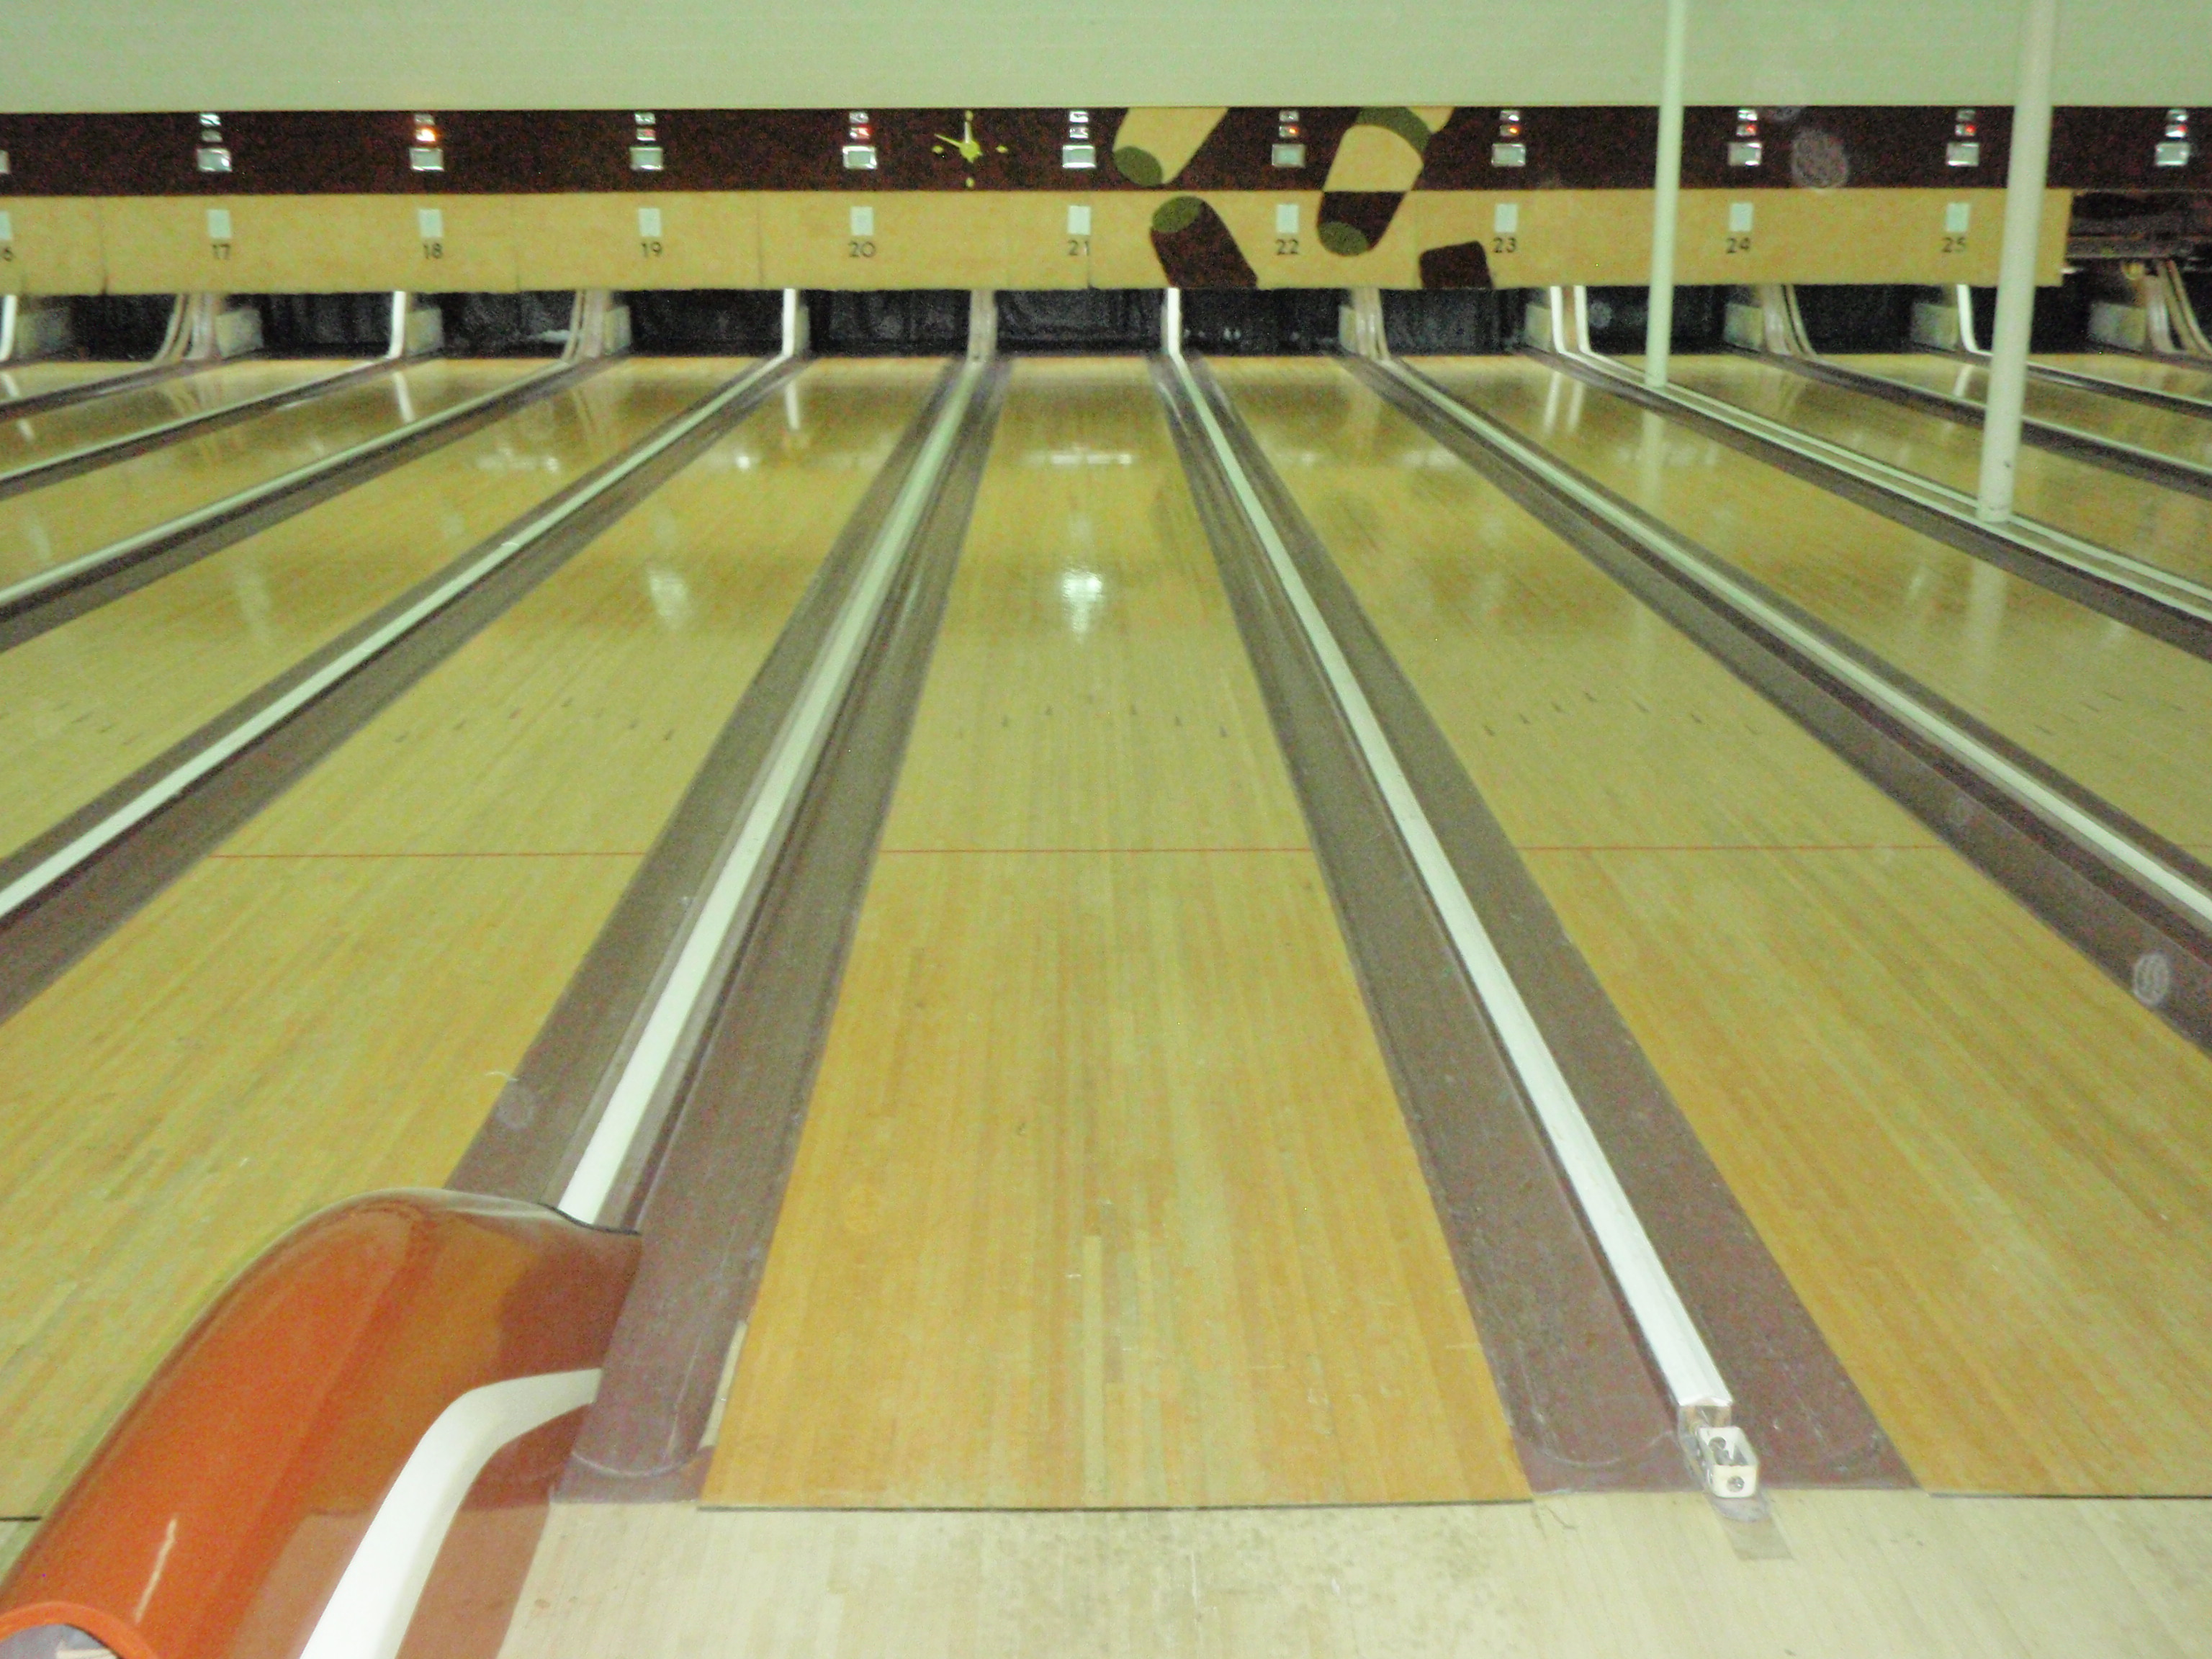 Bowling for Fairway house cleaning